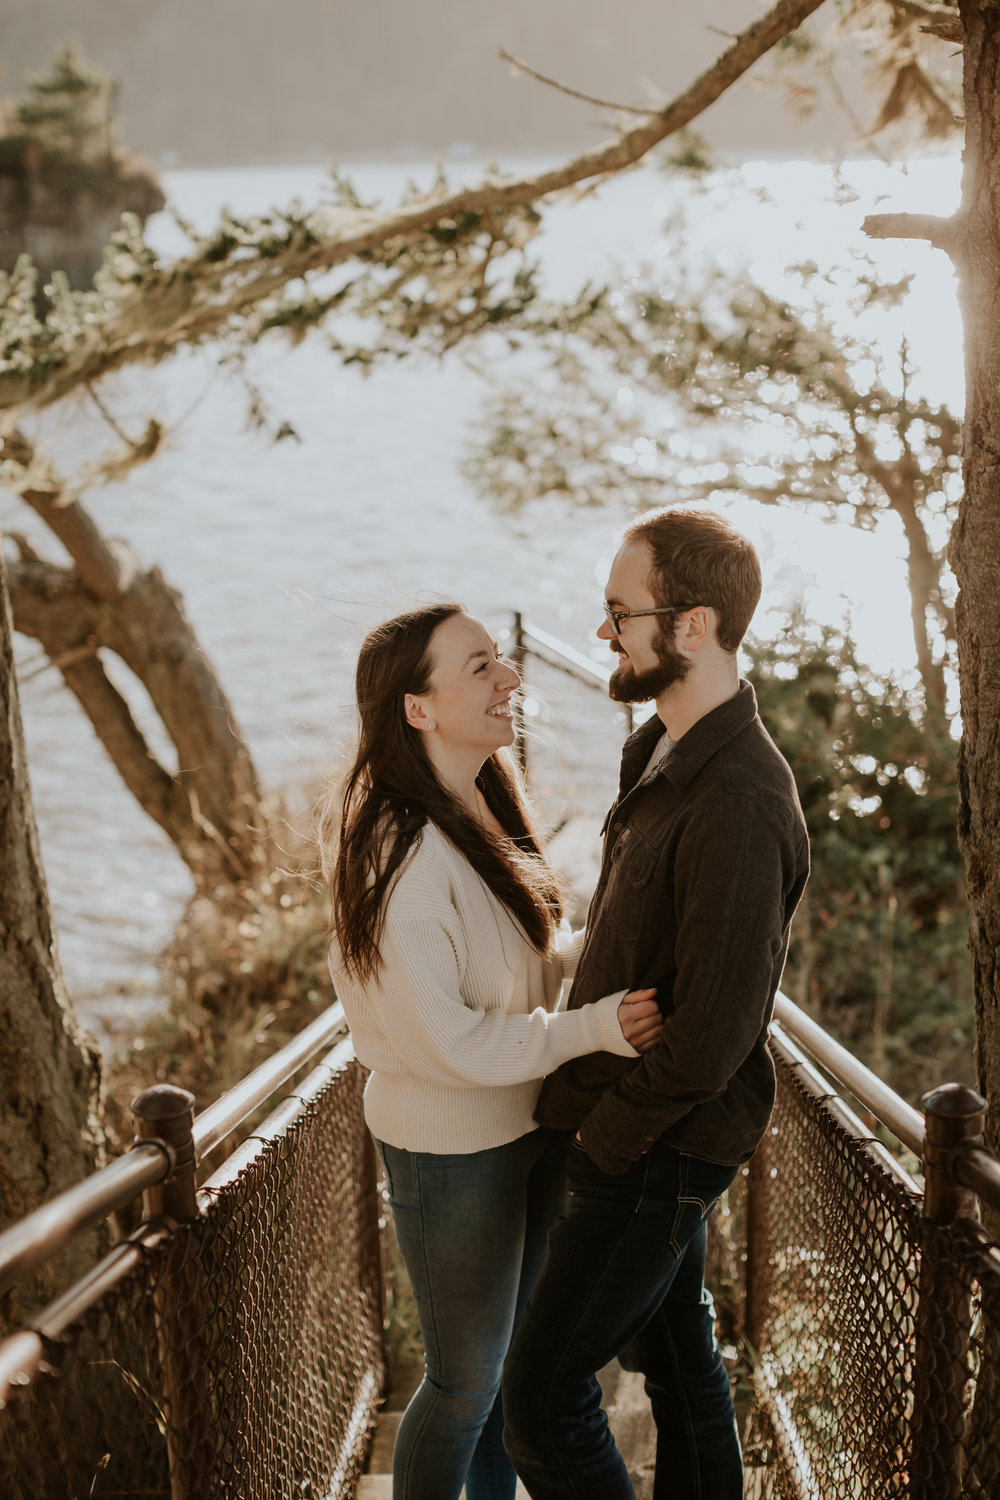 PNW-Olympic National Park-Salt Creek-engagement-Portrait-Port-Angeles-Washington-elopement-photographer-kayla-dawn-photography-kayladawnphoto-wedding-anniversary-photoshoot-olympic-peninsula-116.jpg